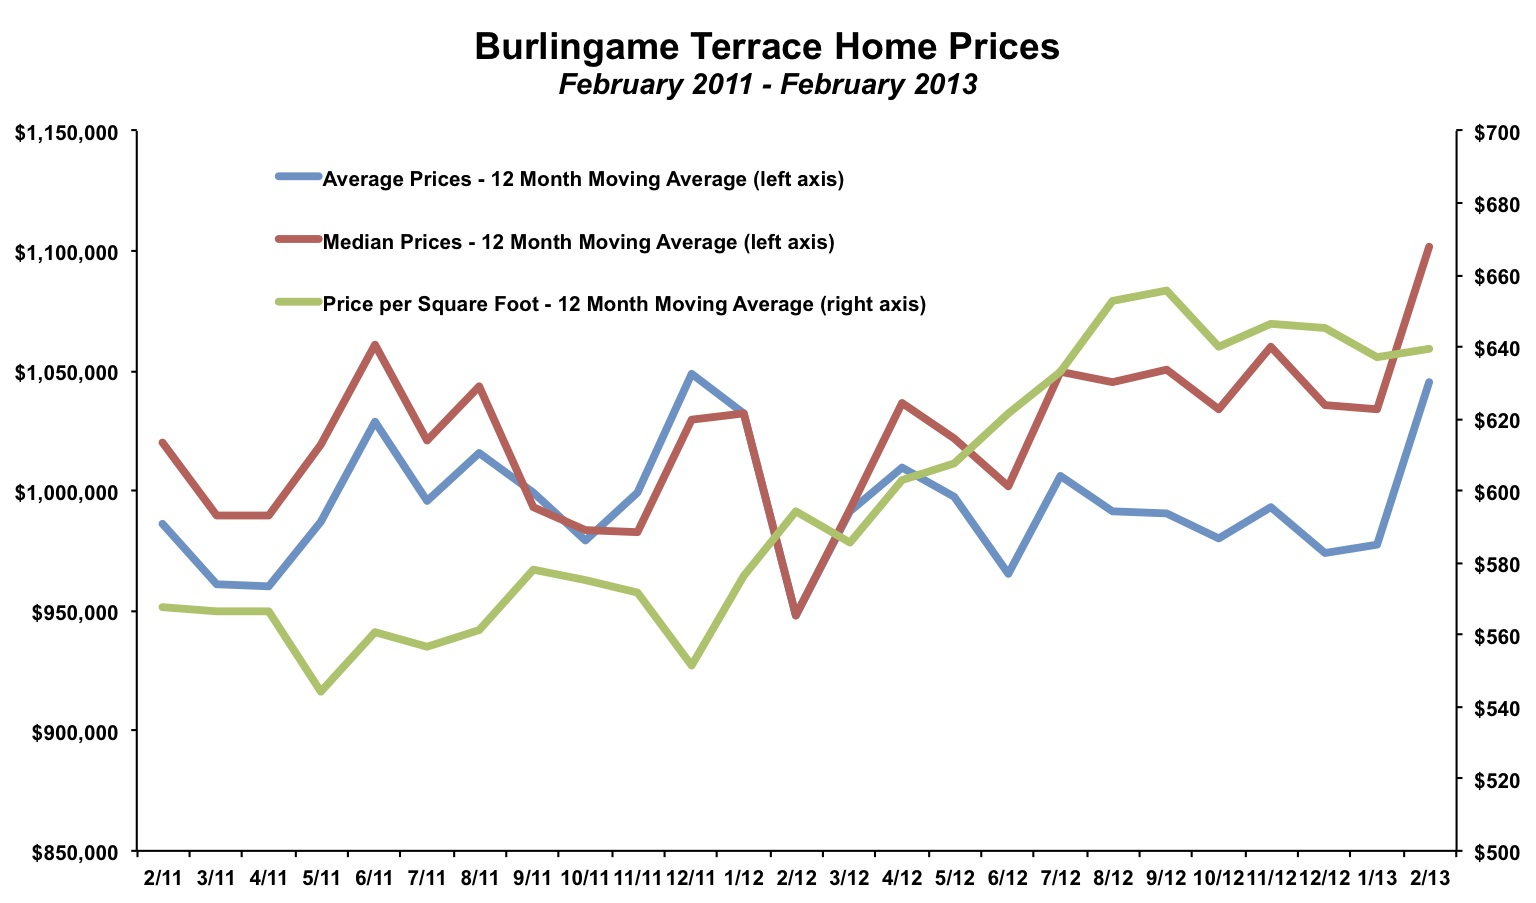 Burlingame Terrace Home Price February 2013